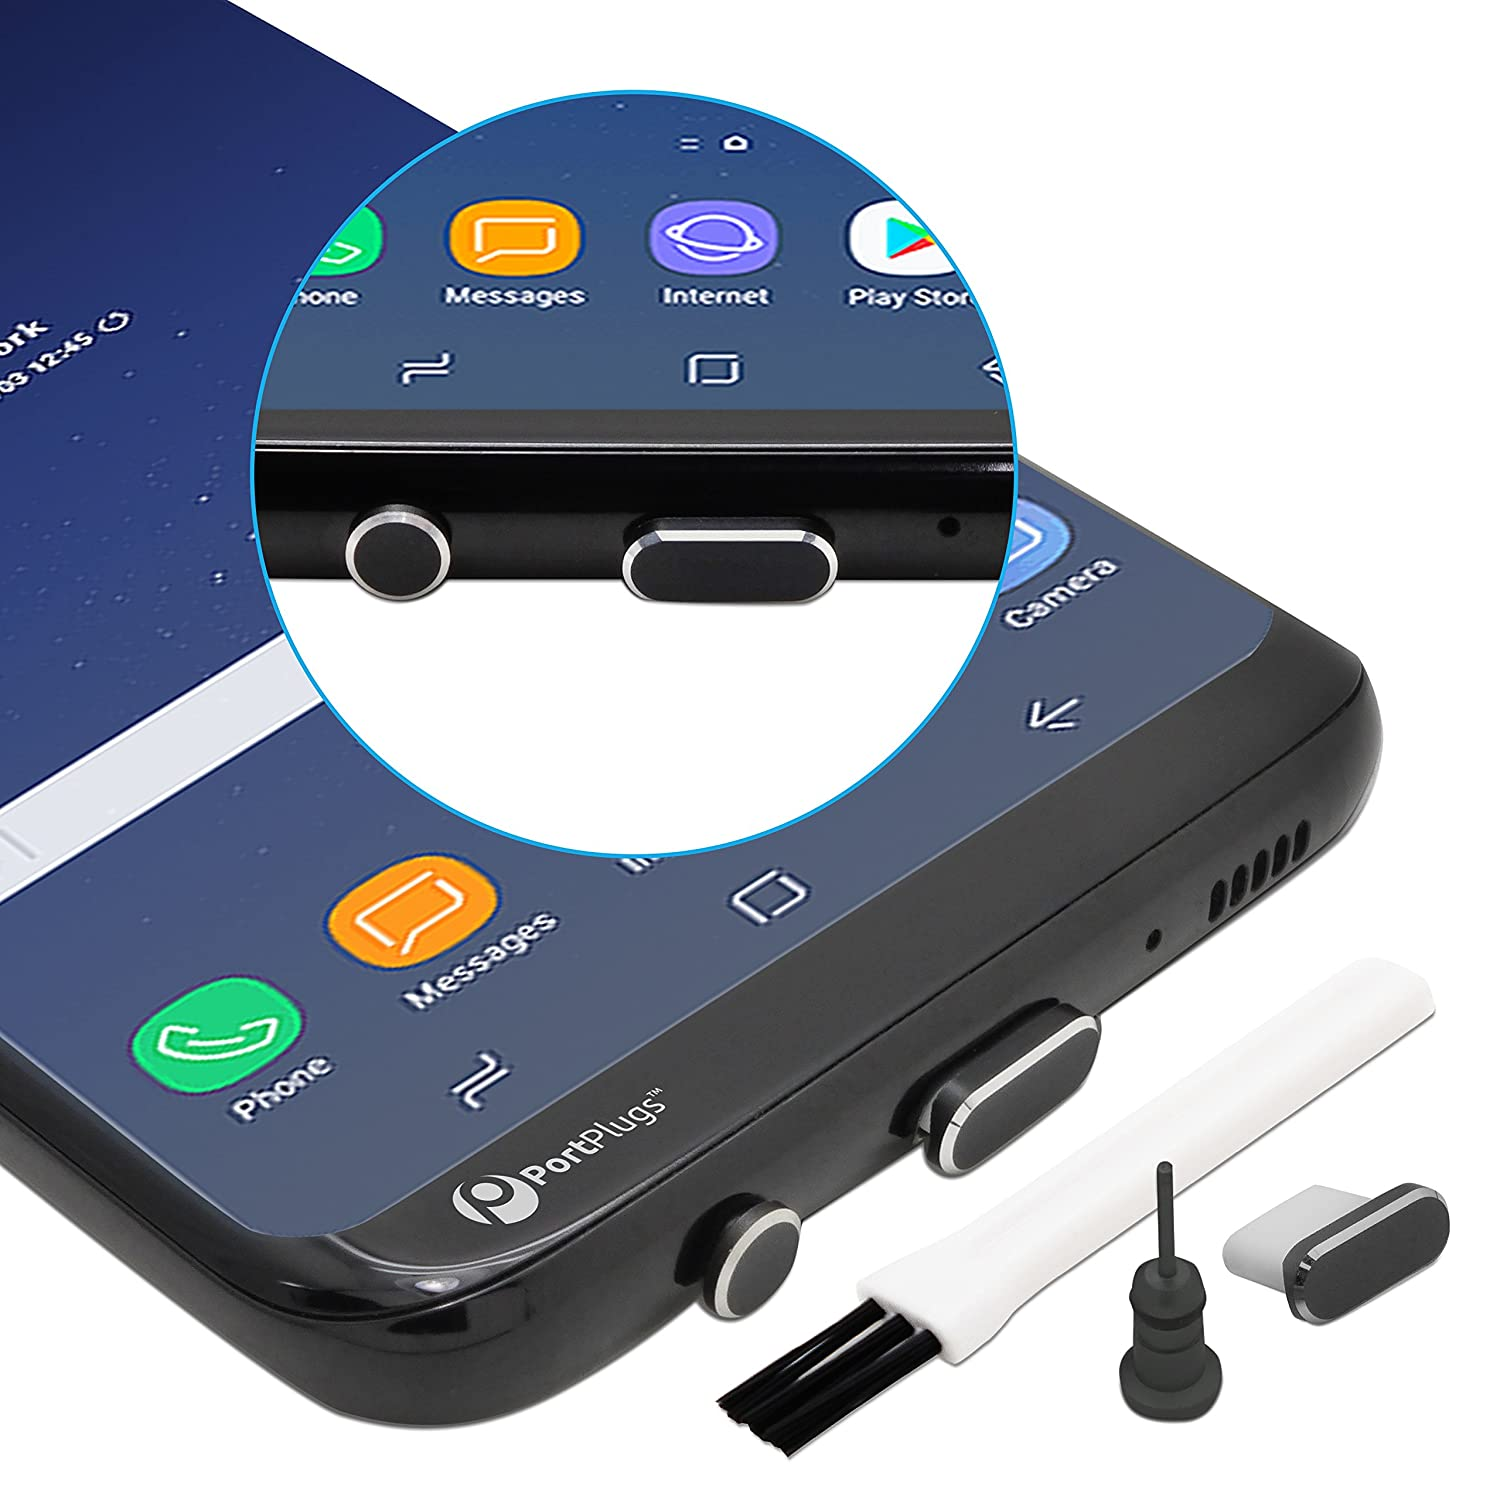 PortPlugs - USB C Dust Plug Set - Compatible with Samsung s10, s9, s8, Note - Aluminum Charging Port and Headphone Jack - Includes Holders and Cleaning Brush (Black)